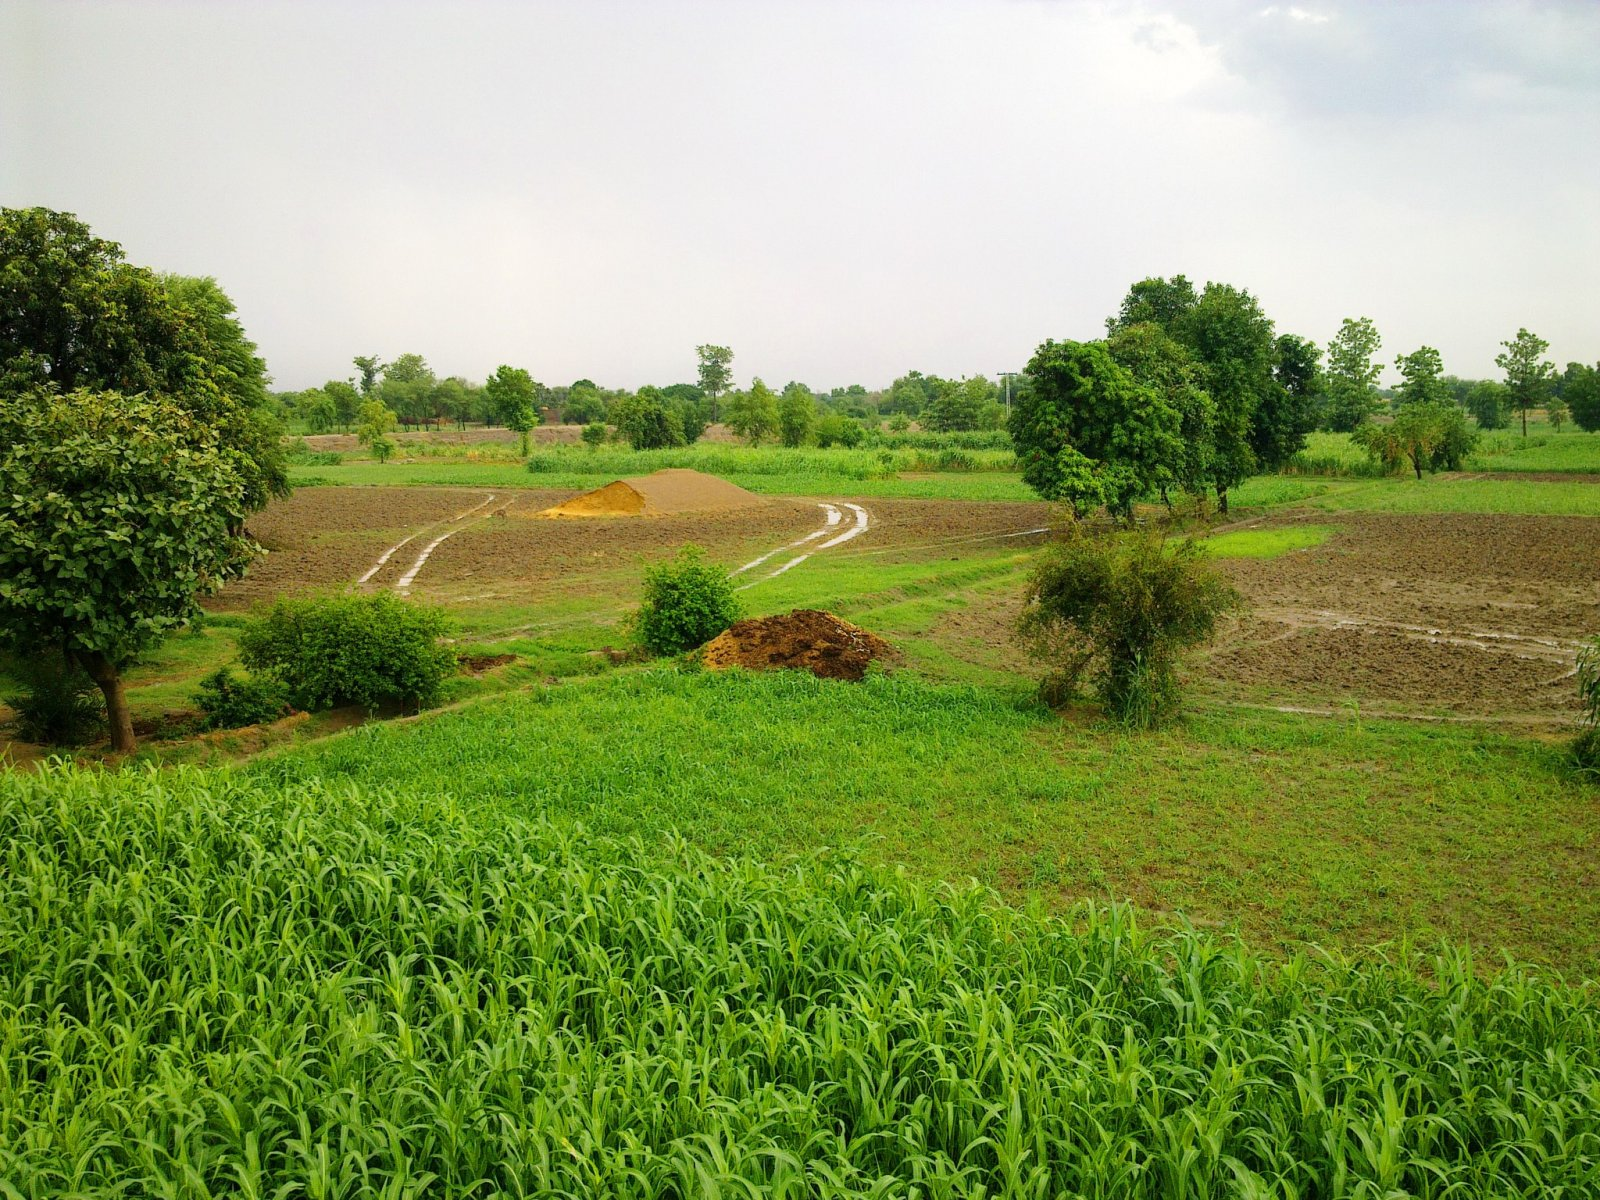 https://wondersofpakistan.files.wordpress.com/2012/10/villages-of-punjab-pakistan-24.jpg